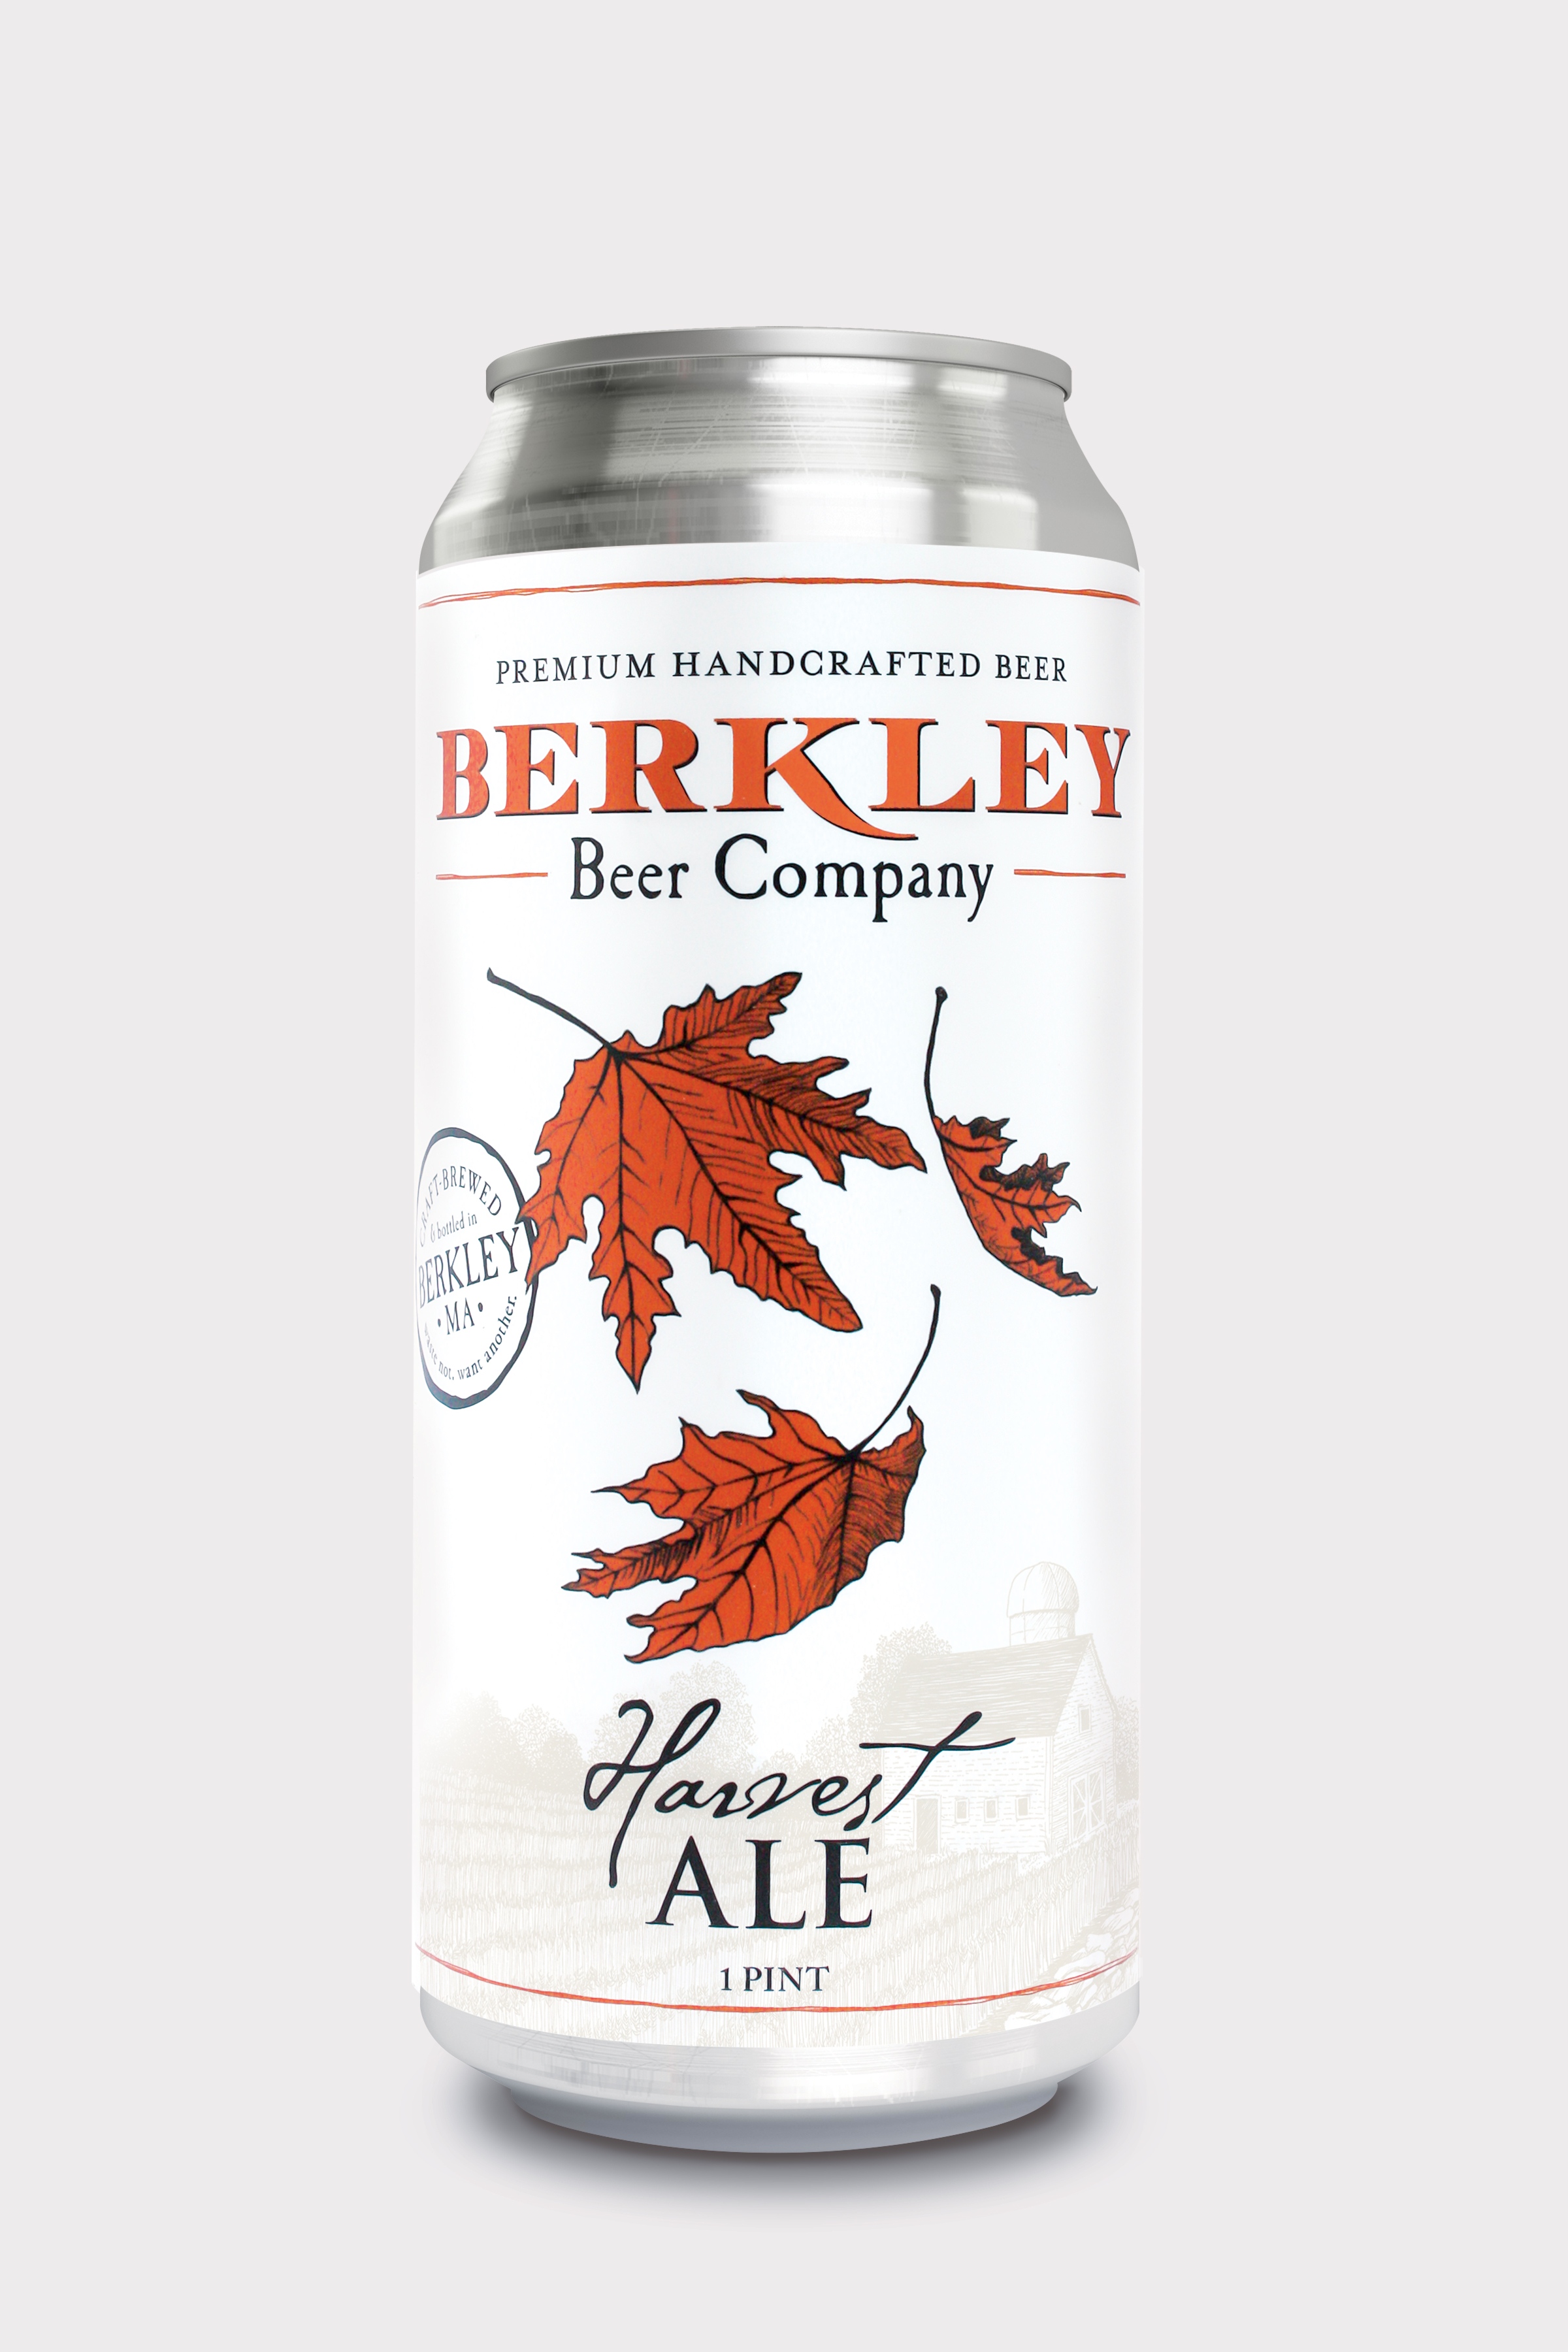 Harvest Ale 6%  The perfect blend of sweet and savory is the distinctive feature of Berkley's Harvest Ale. It's rich, malty flavor, makes this Oktoberfest-style ale not only very drinkable, but also the ideal autumn treat.